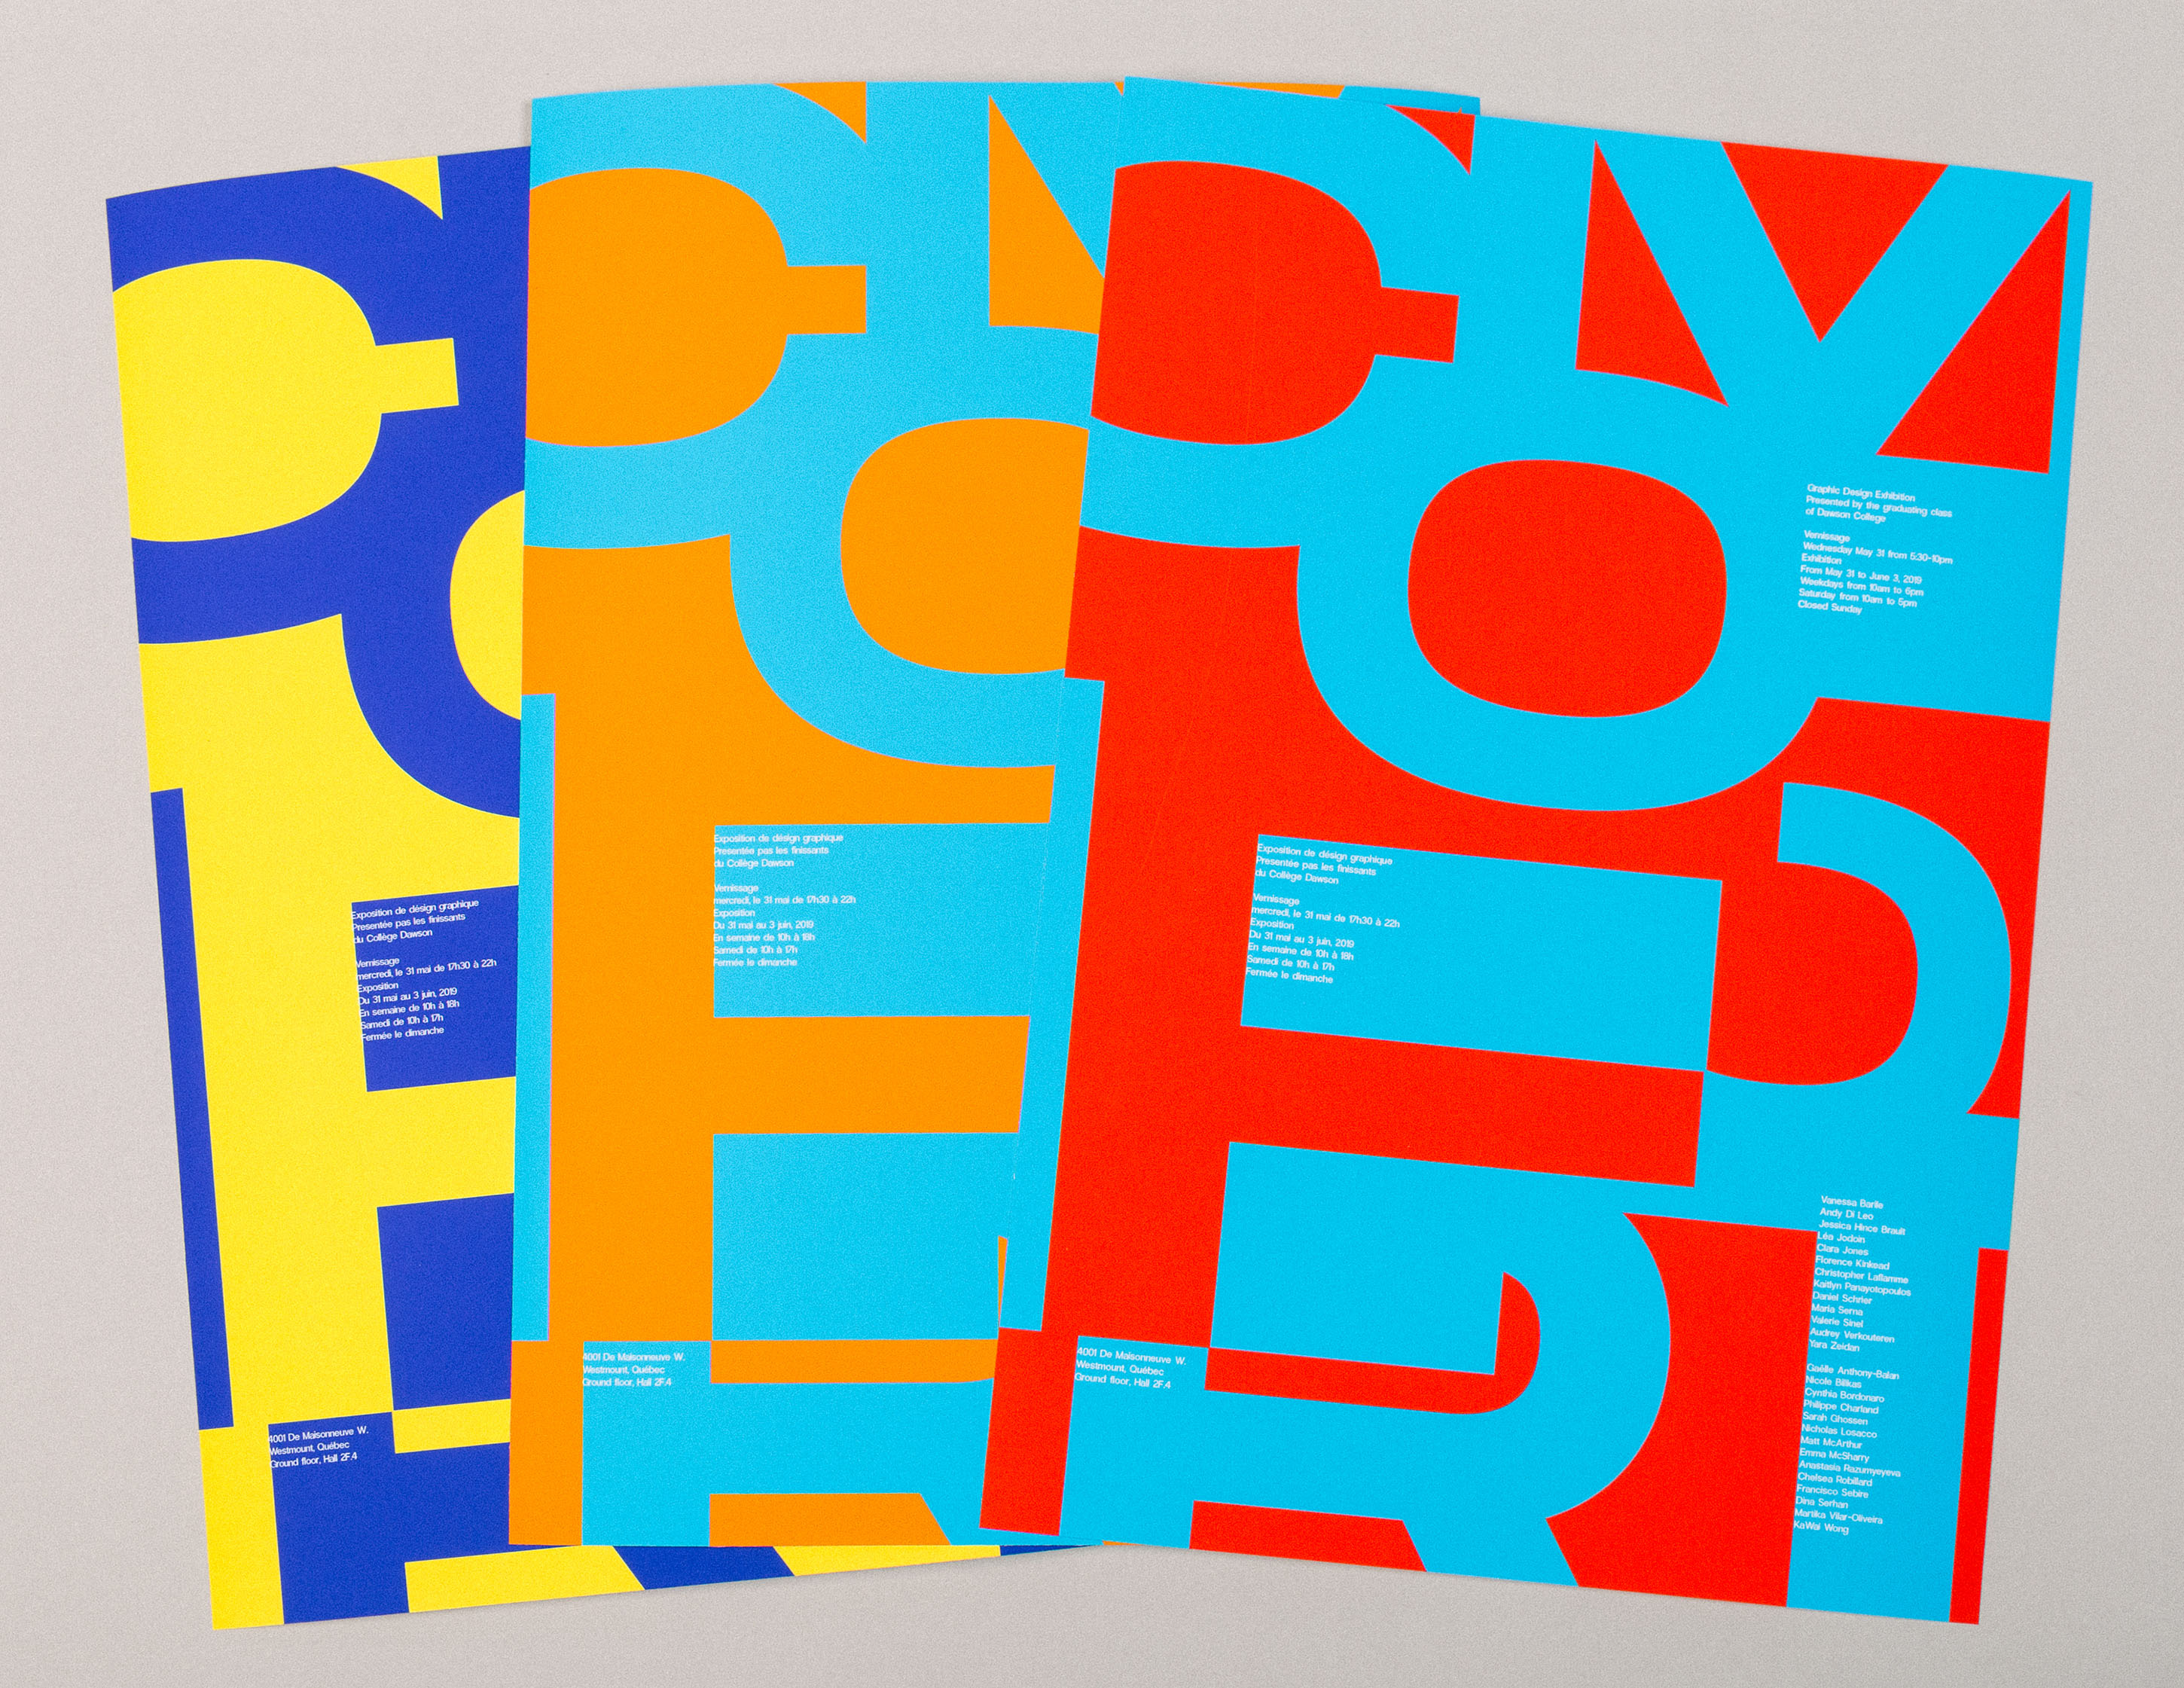 colourful posters